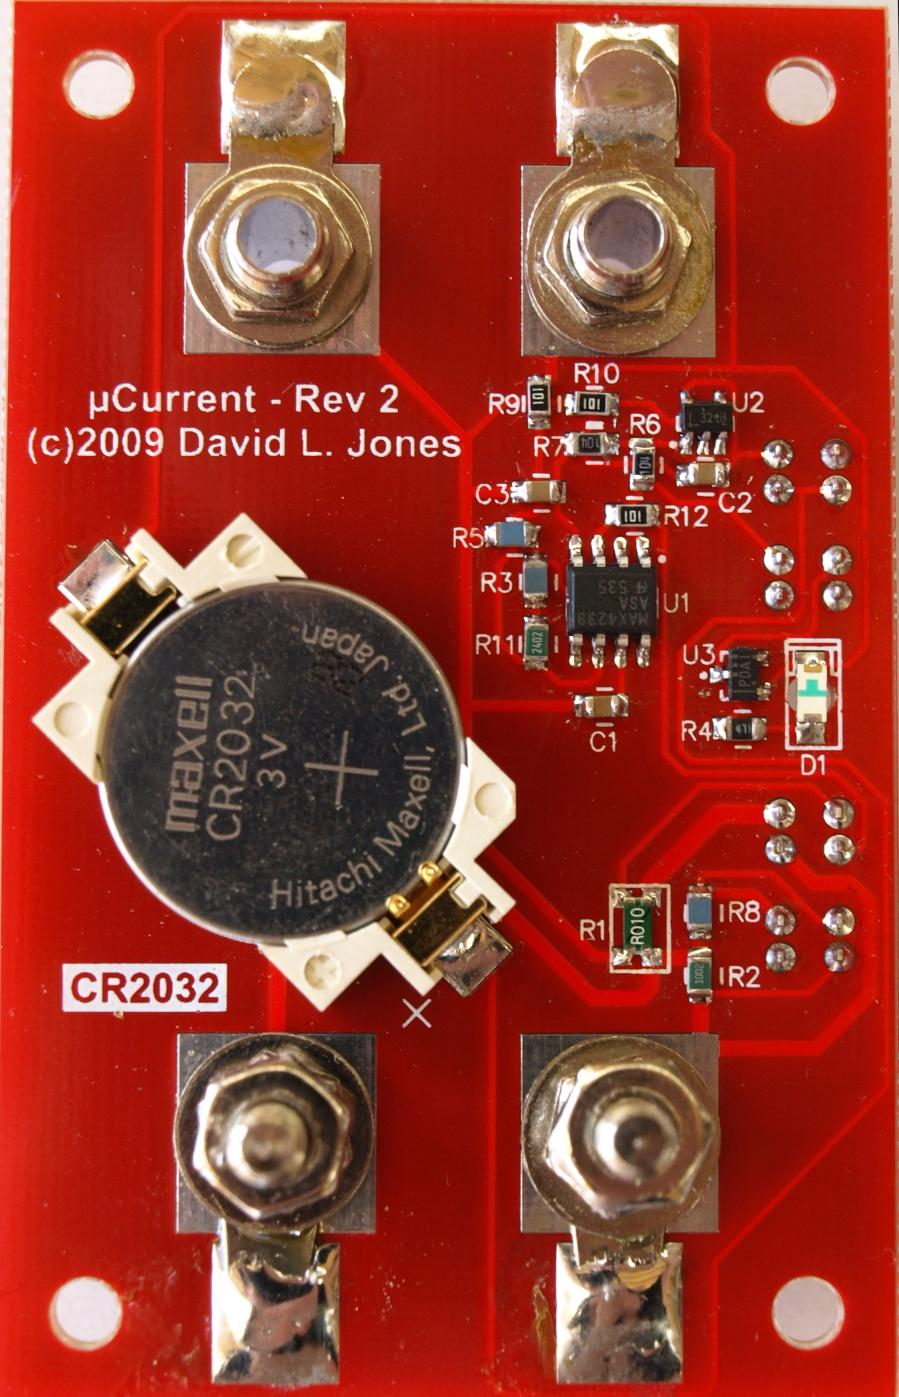 Dmm Current Measurements Could Be Affecting Your Circuit Operation Electronic Design Open Source Jones Has Assembled And Tested Devices That Sell In The Us For About 60 From Adafruitcom David Graciously Made Schematic